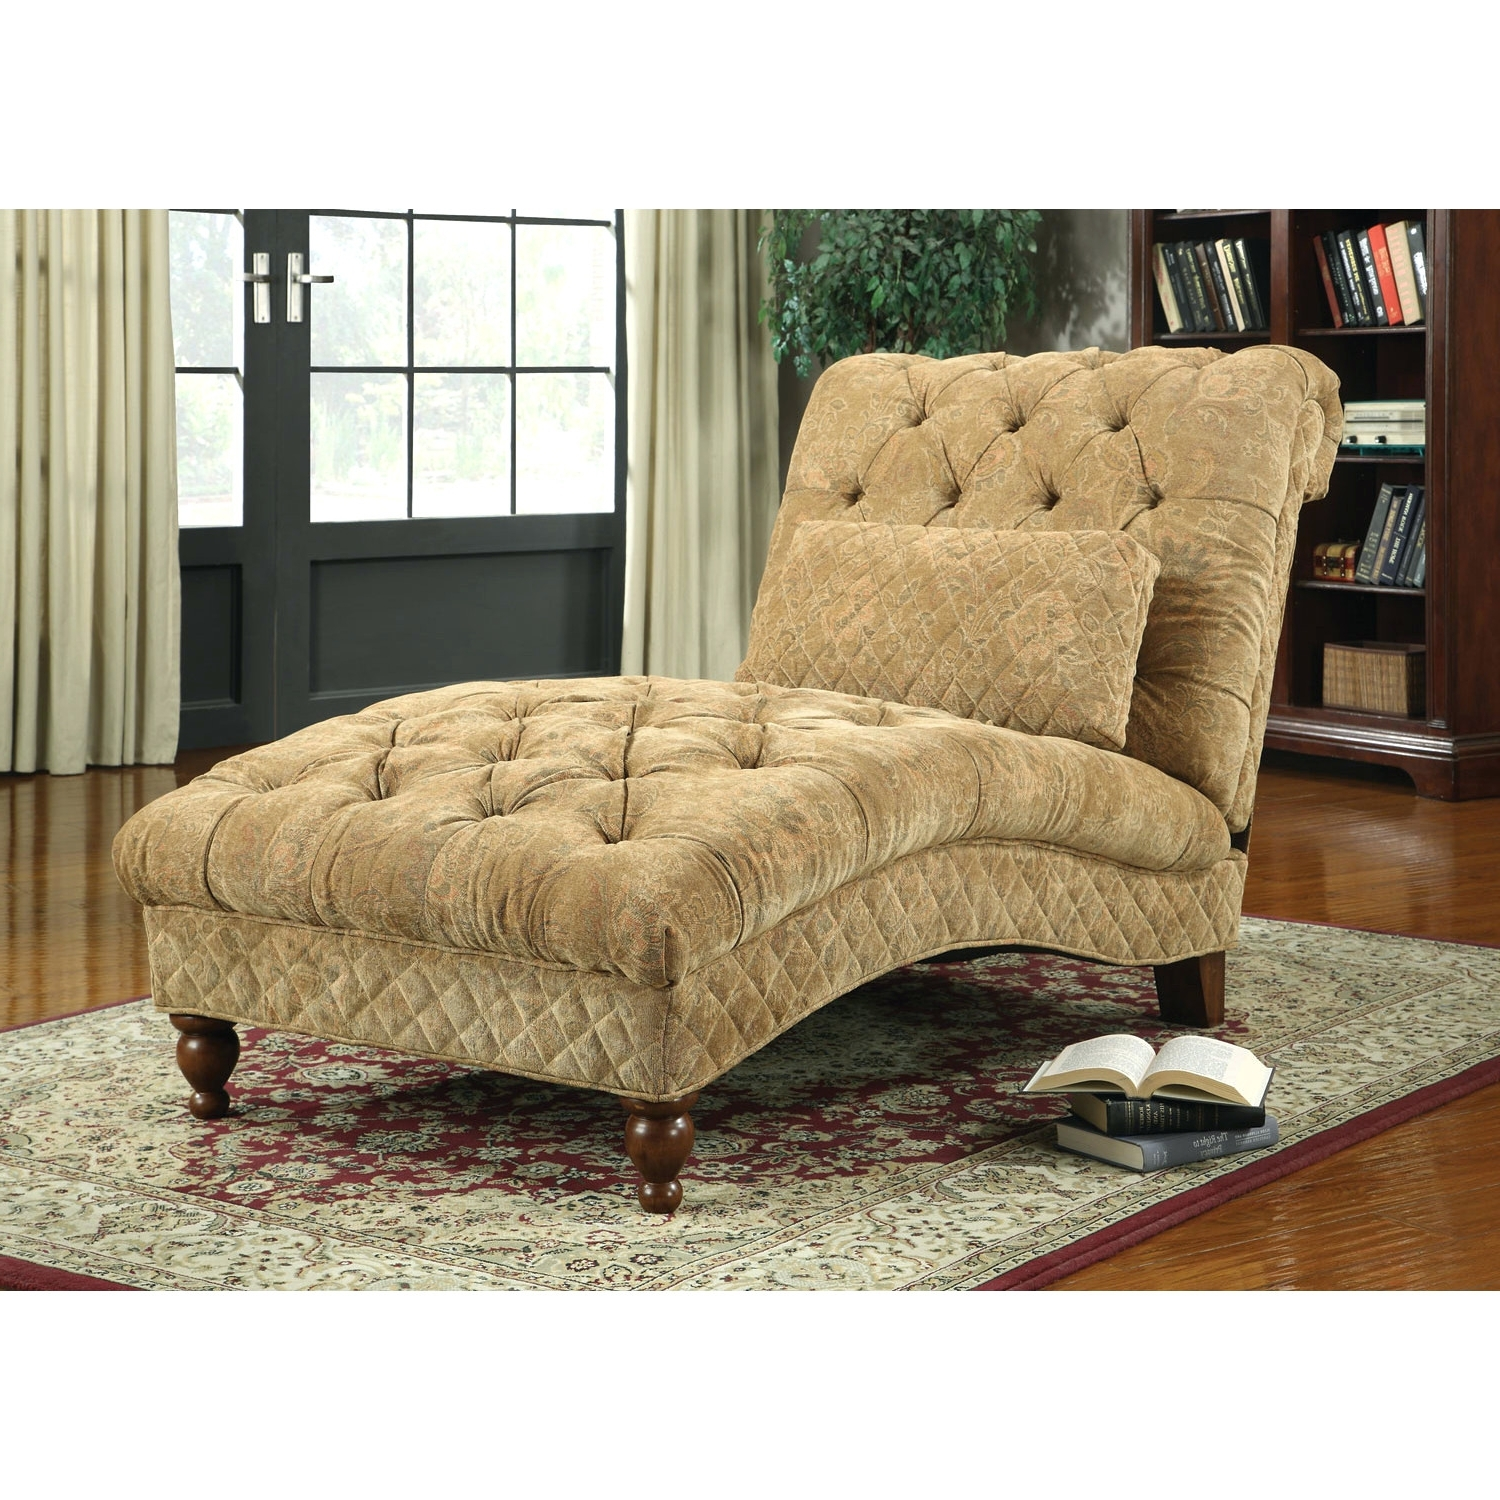 Best And Newest Ideas Collection Two Person Chaise About 2 Person Chaise Lounge Throughout 2 Person Indoor Chaise Lounges (View 8 of 15)